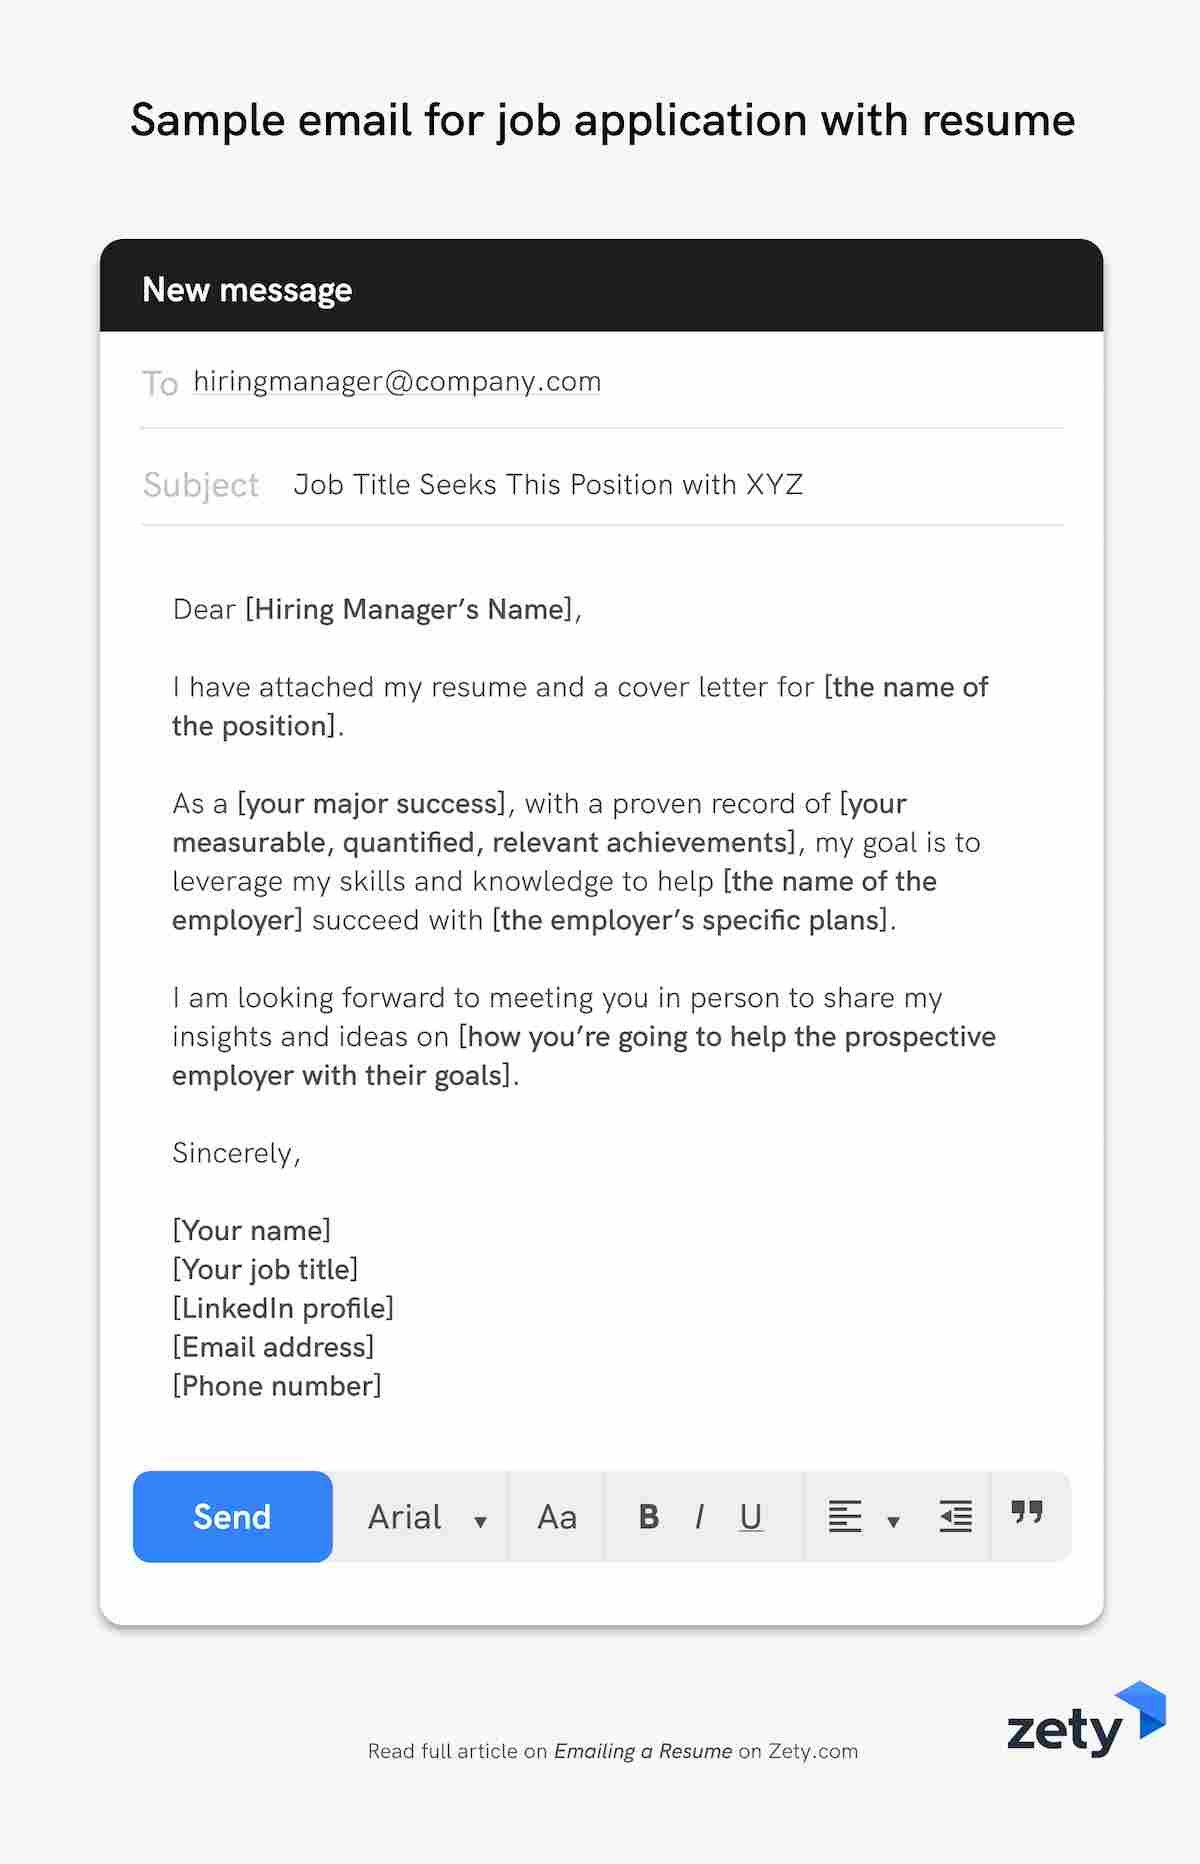 emailing resume job application email samples draft for sending sample with casino Resume Draft For Sending Resume